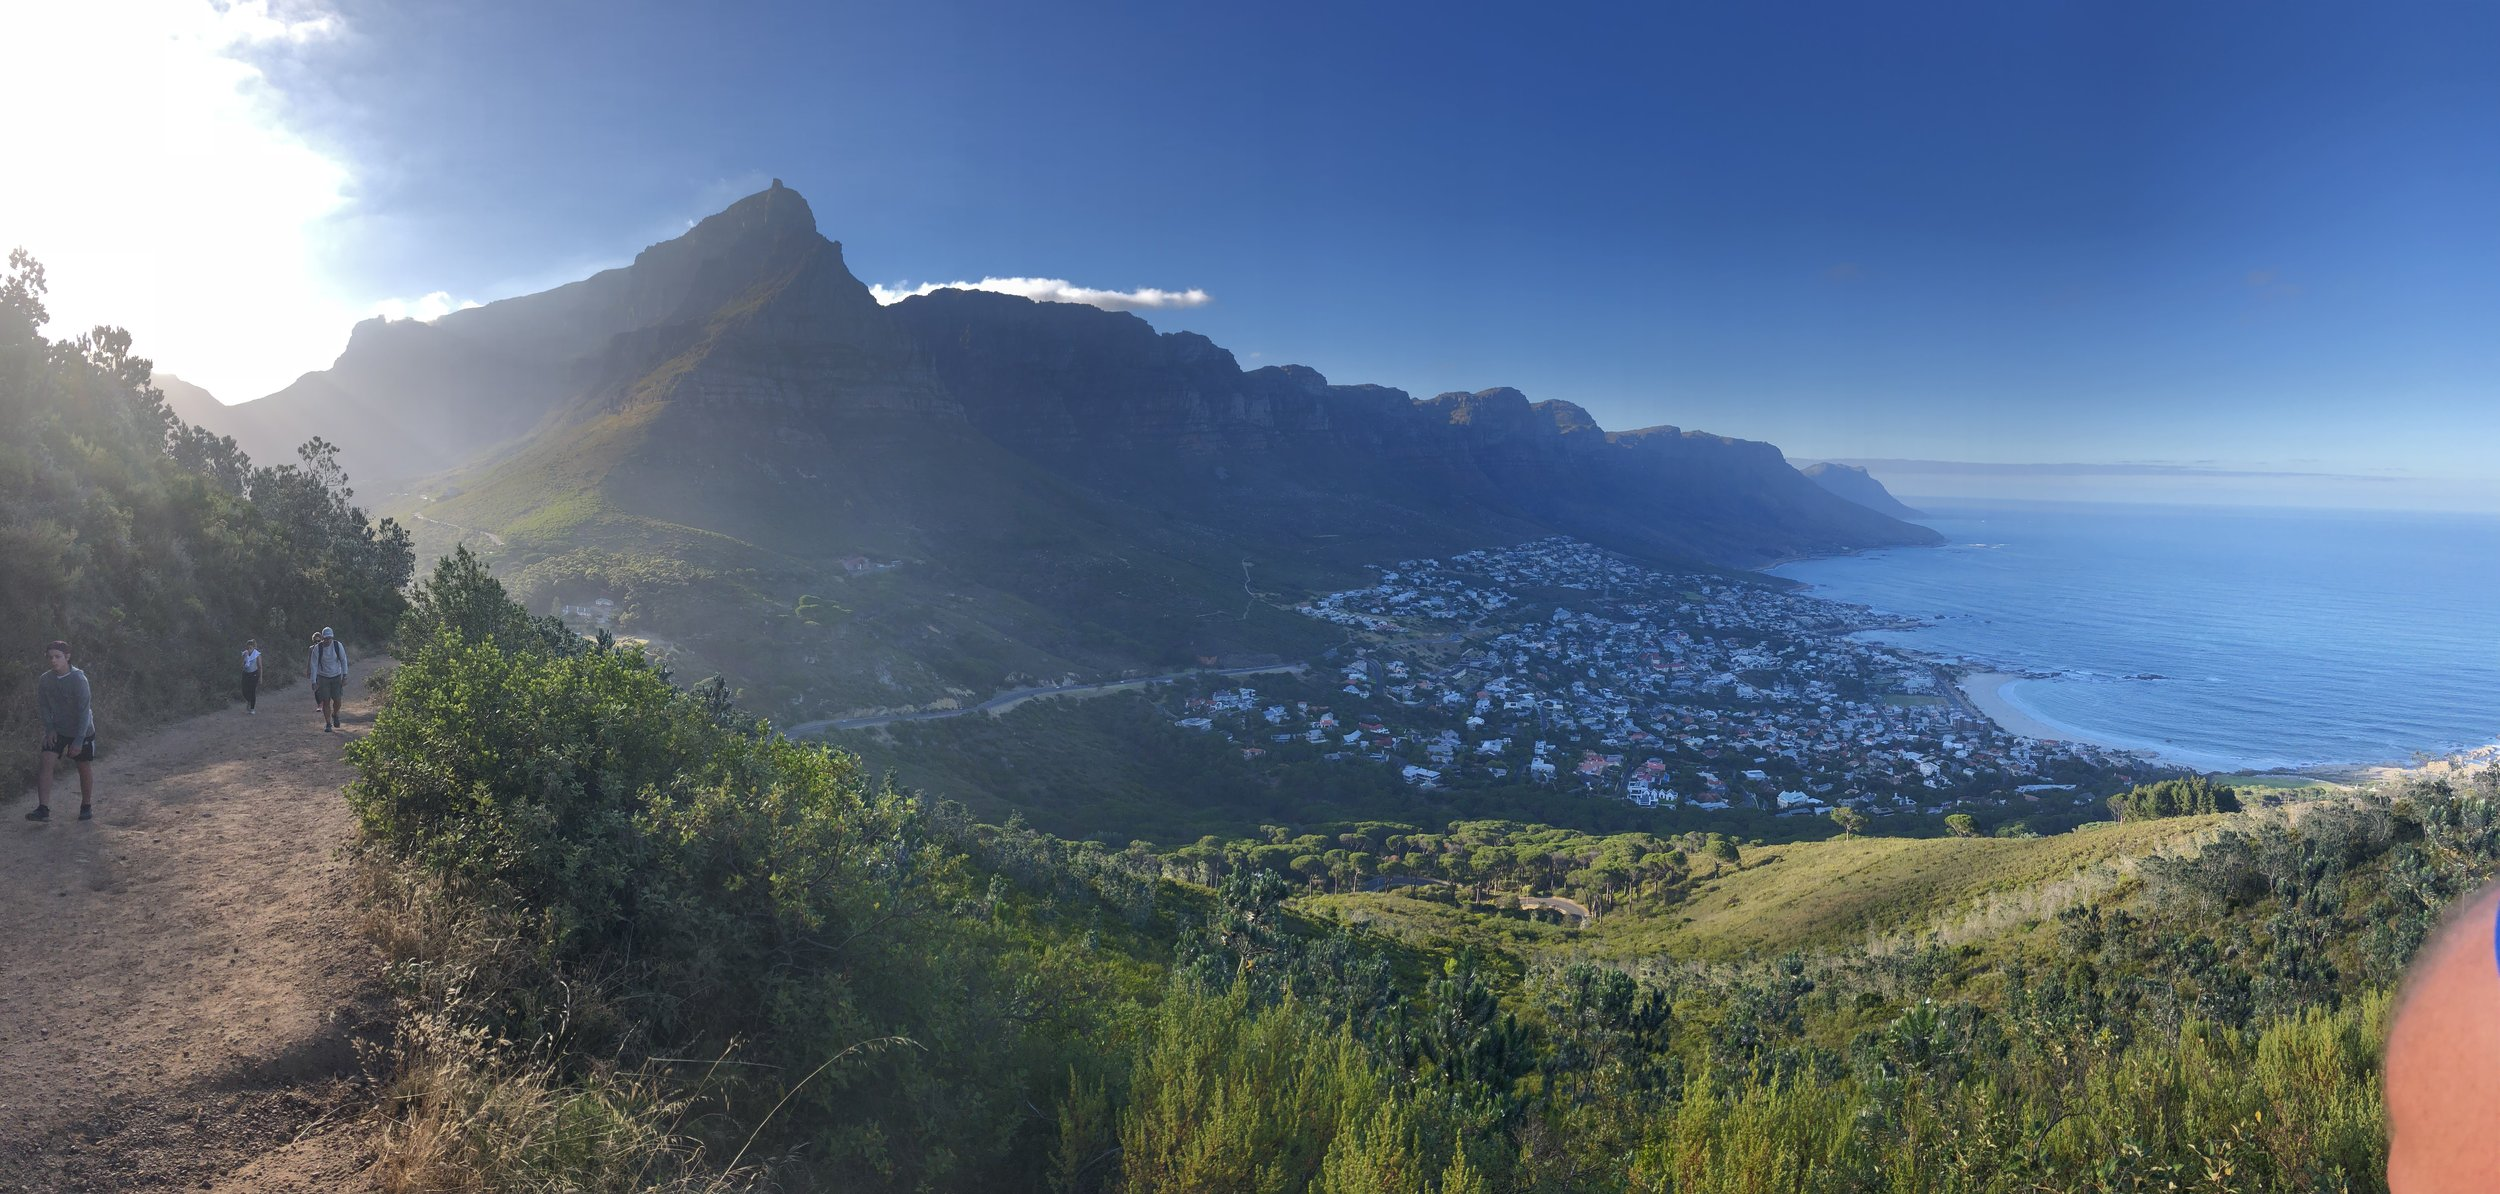 Along the way to the top of Lion's Head in Cape Town. This was before the path got too anxiety producing to take photos.